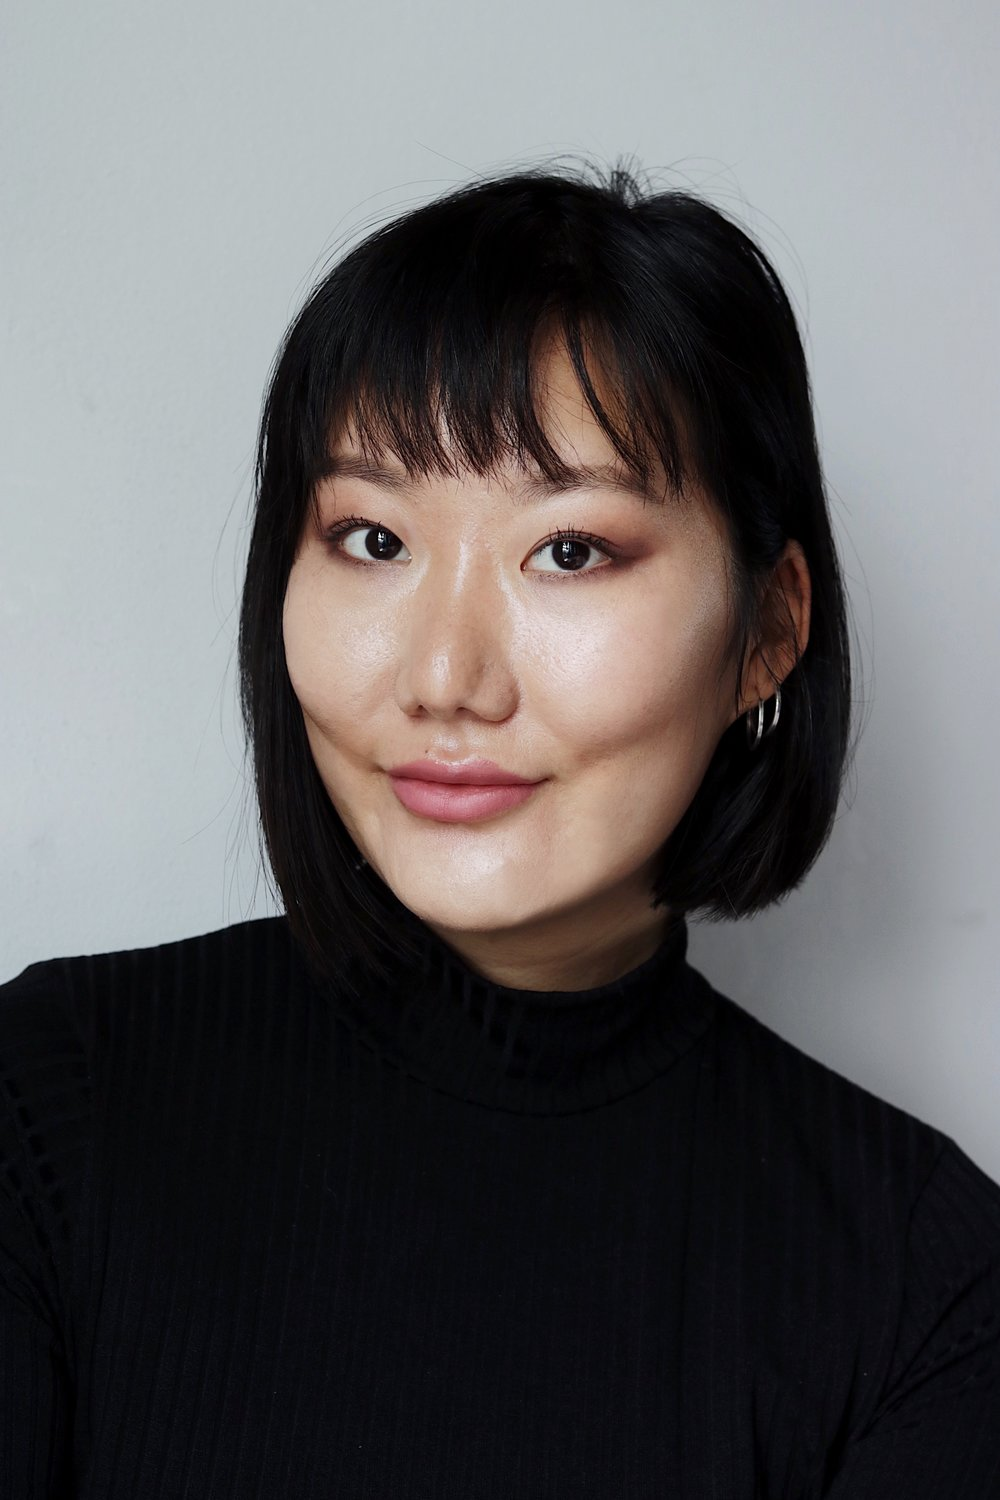 """JI WON CHOI - Born in Seoul, raised in the midwest USA, and educated in New York City and Paris, JI WON CHOI's work revolves around human cultures and using design to promote positive change within societies.A graduate of Parsons School of Design, she presented her thesis collection, EXCESSIVISM, at the Parsons Benefit in May 2017. The collection was the winner of Kering Empowering Imagination Award, winner of Yoogygen Award by Yoox, finalist of Eyes on Talent Award, CFDA Fashion Future Graduate, and finalist of Parsons Creative Systems Award. Her work has been displayed at the Bergdorf Goodman window in New York and at New York Textile Month. In September 2017, she was awarded the """"Ones to Watch"""" Award by Fashion Scout and presented her collection at London Fashion Week. In April 2018, her exclusive capsule collection for Yoox was launched. Selected as one of series 6 designers, she is presenting her next collection at New York Fashion Week in partner with the CFDA and LIFEWTR. Her work has been featured in various international magazines, and exclusive interviews have been featured on Vogue Italia, Vogue USA, LOVE, Modern Weekly China, and Bullett Media."""